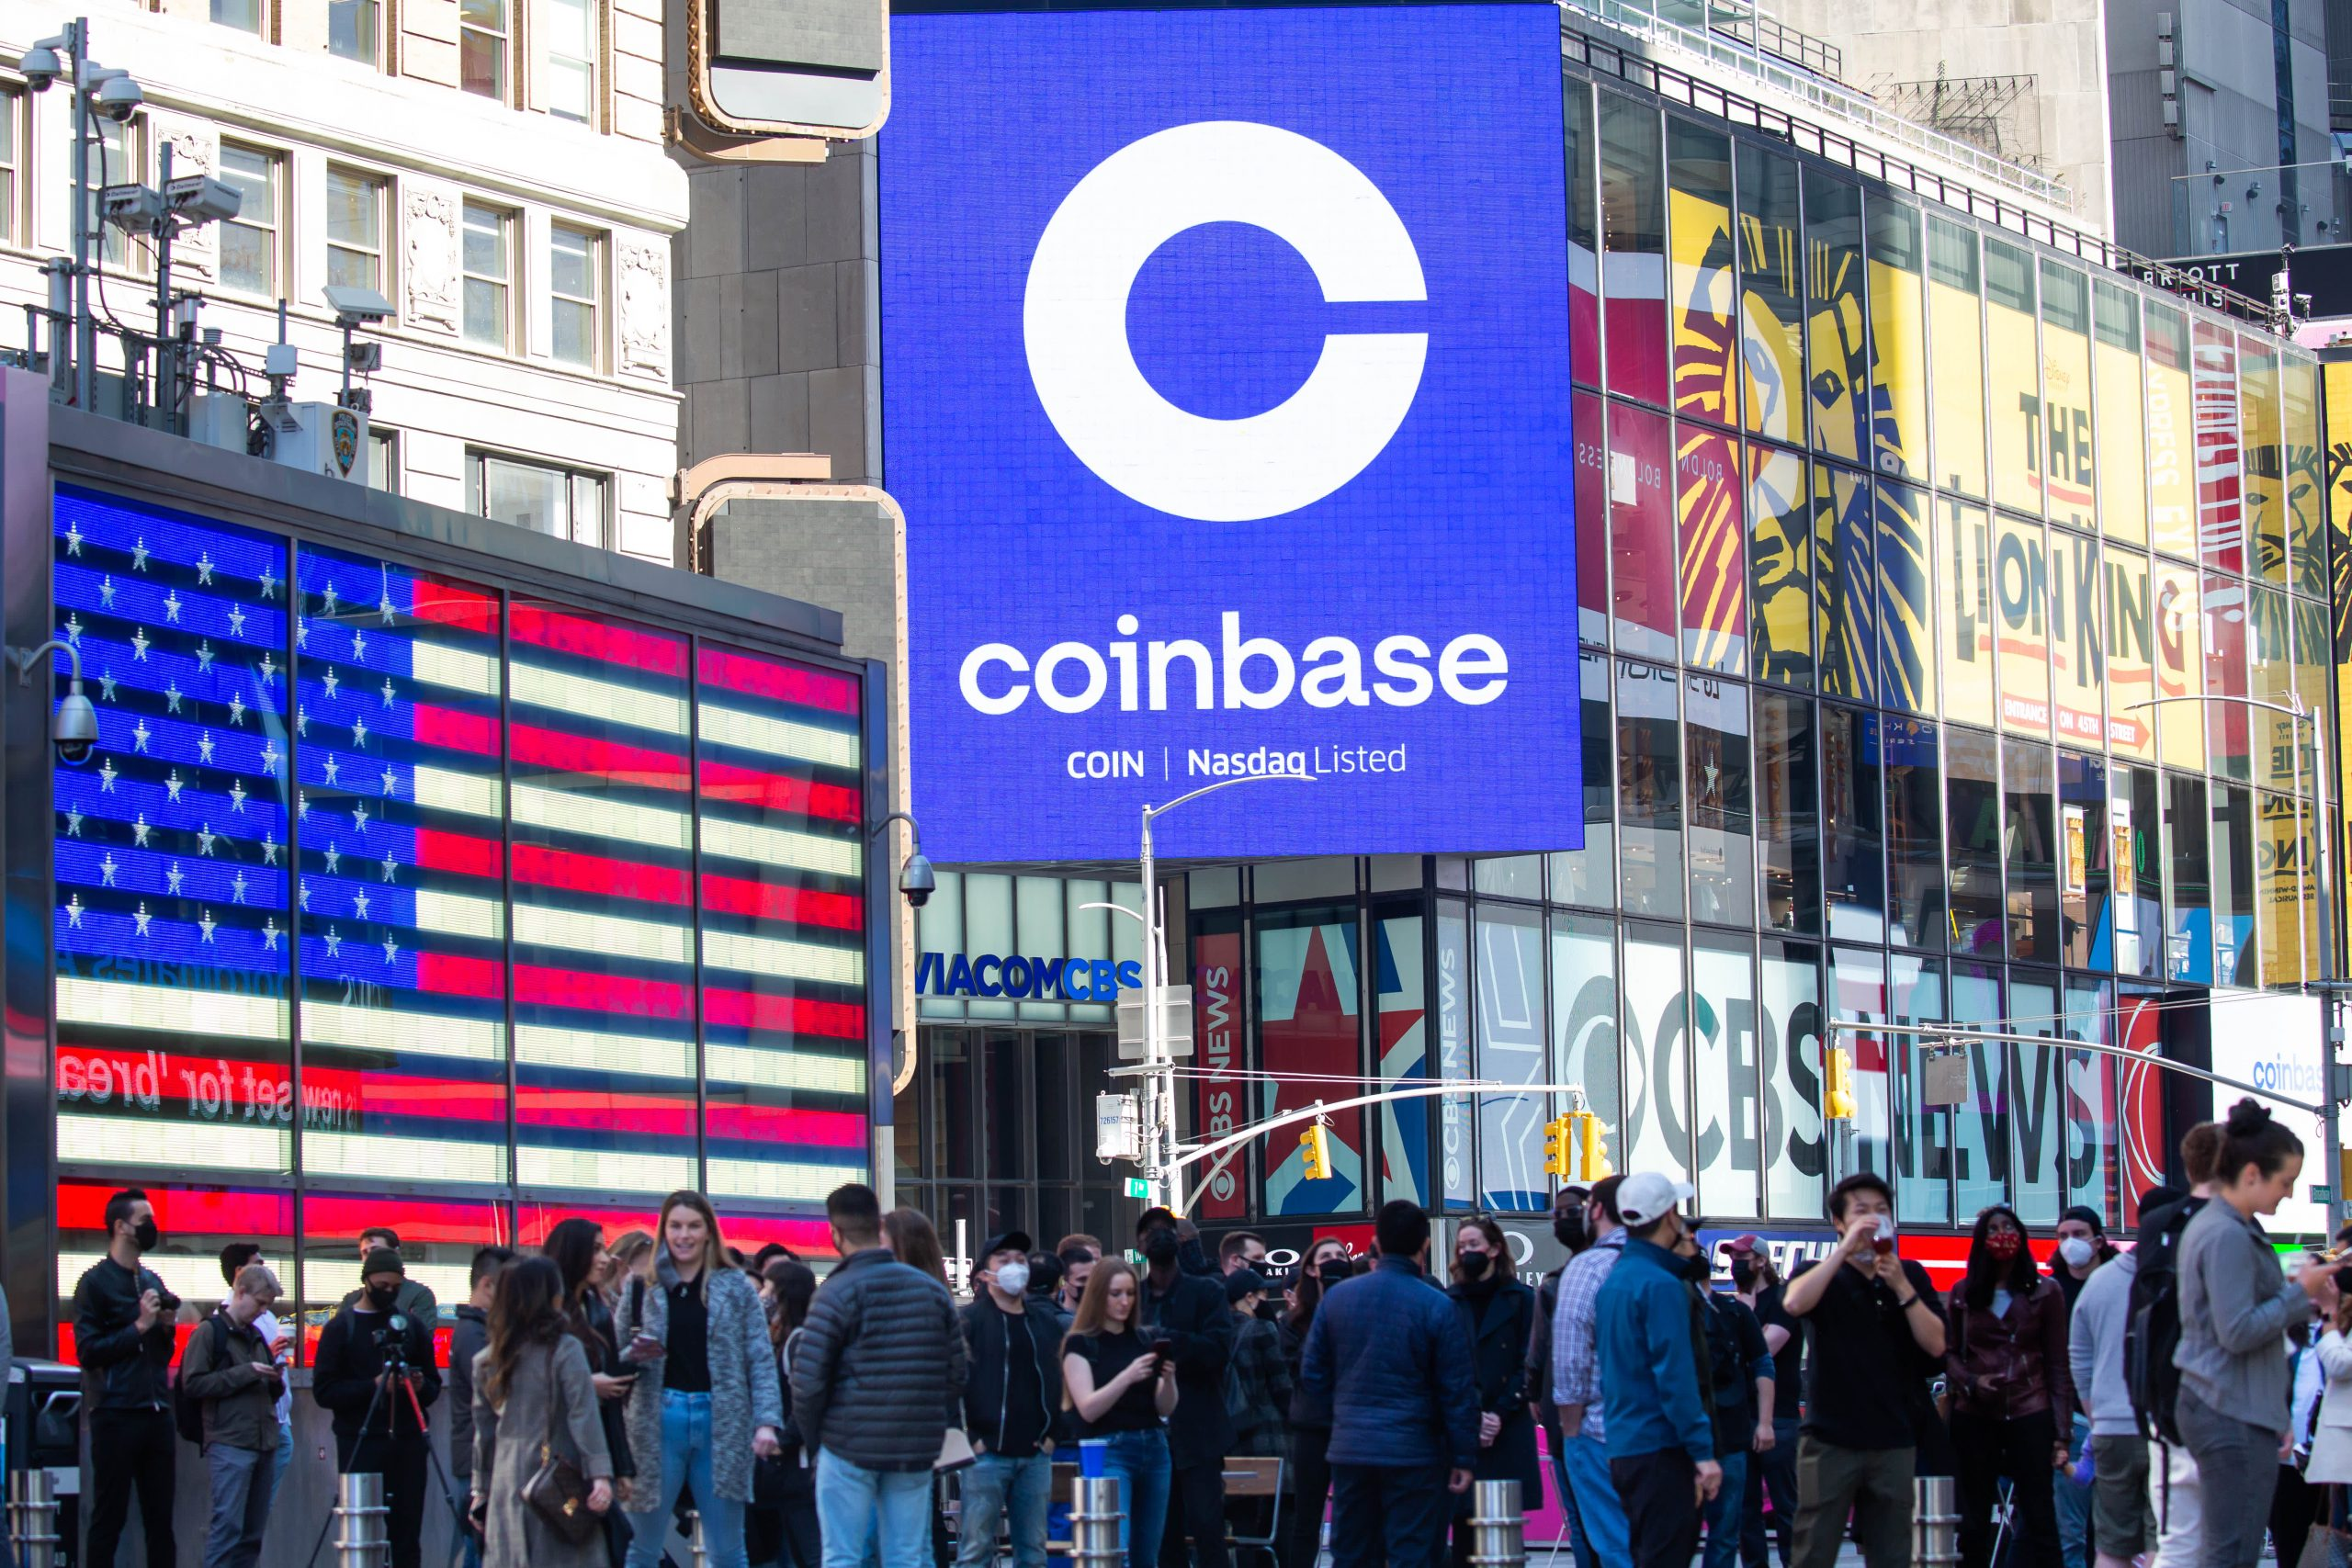 Raymond James gives Coinbase its first sell rating on Wall Street, citing competition concern